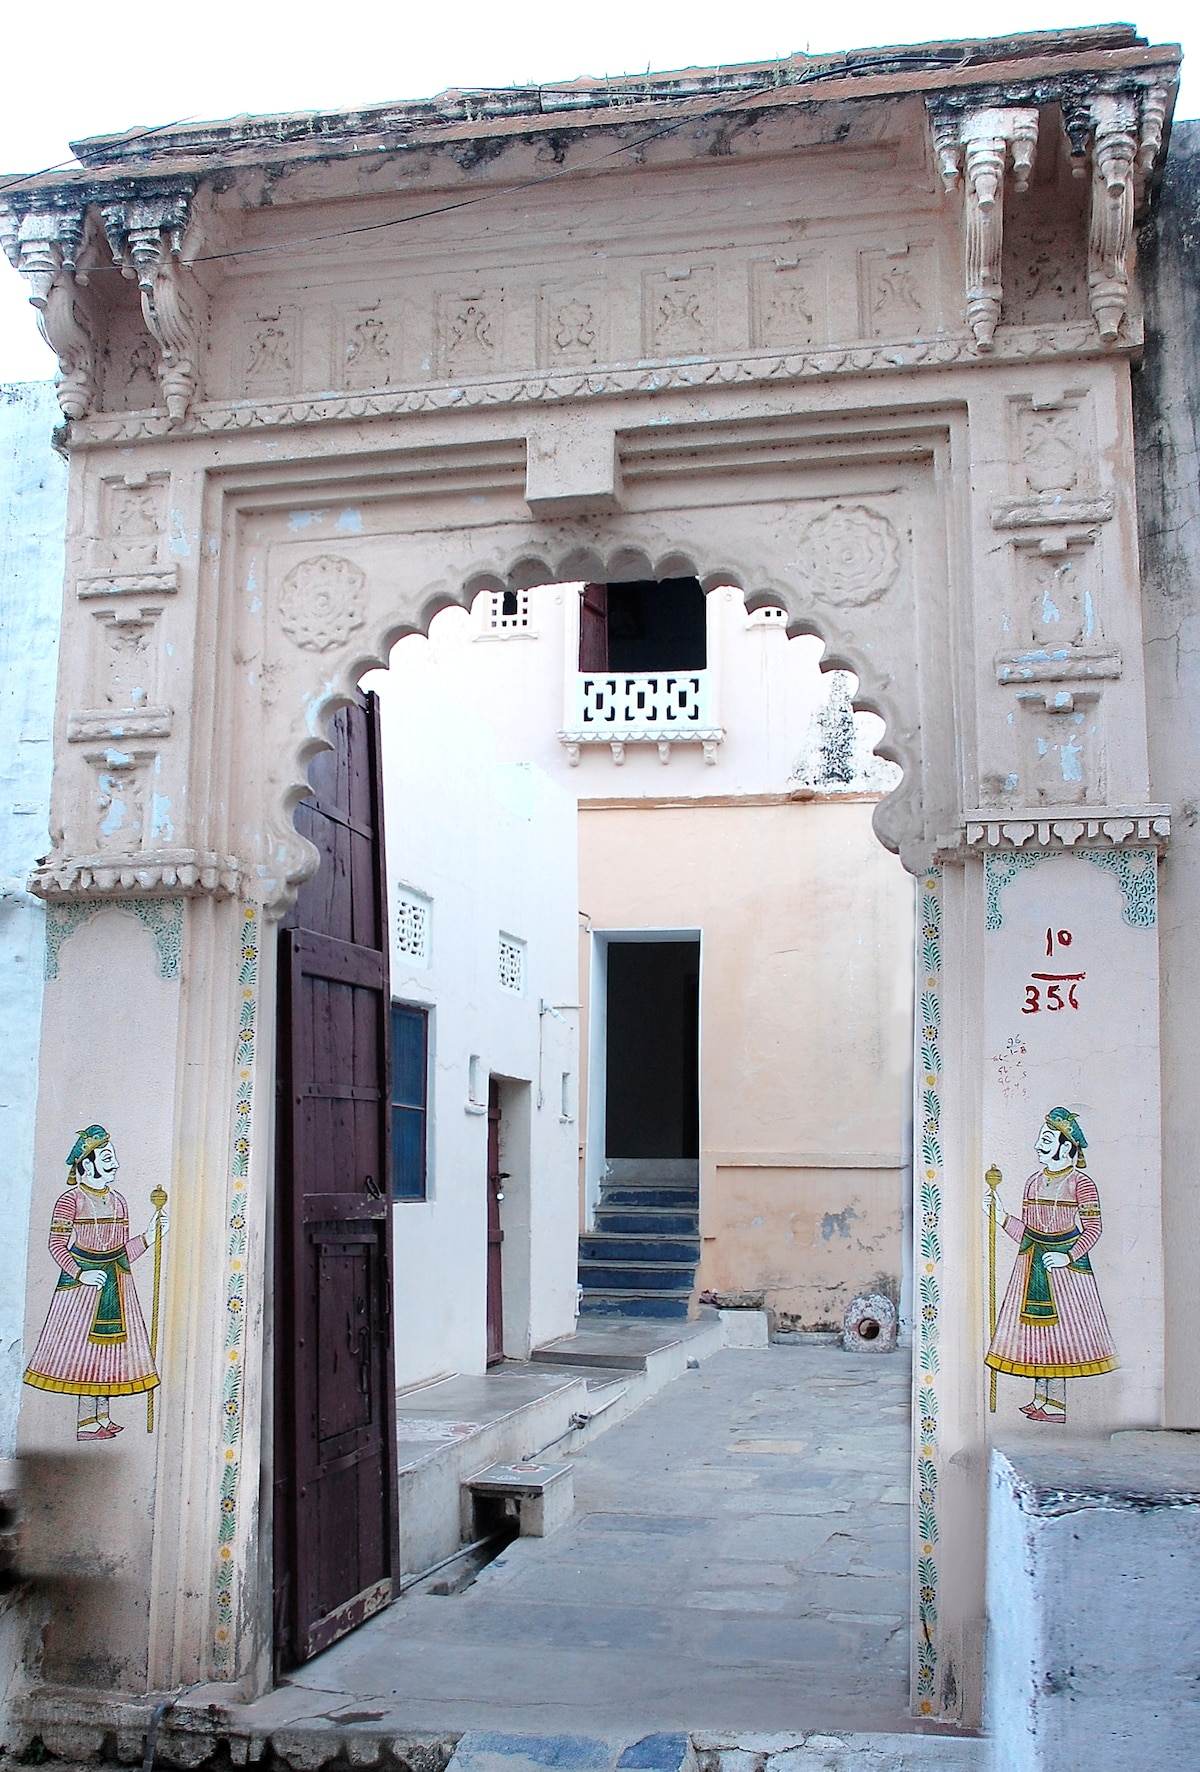 Elephant Gate- 250 year old main entrance to the property. Big enough for the family elephant two generations back! Guest rooms are located off rear courtyard (not in view).